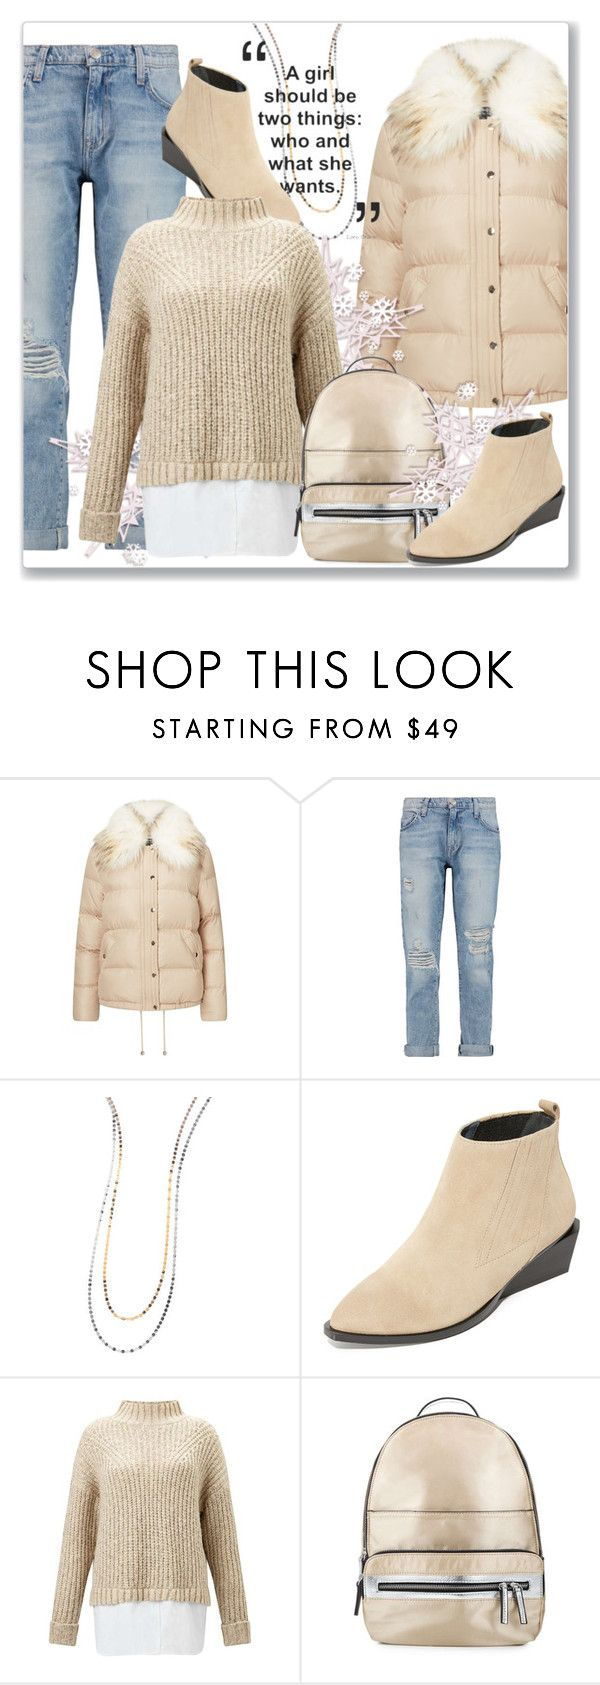 """""""Perfect Puffer Jackets"""" by andrejae ❤ liked on Polyvore featuring Miss Selfridge, Current/Elliott, Lana, UN United Nude, polyvoreeditorial, polyvorecontest and puffers"""